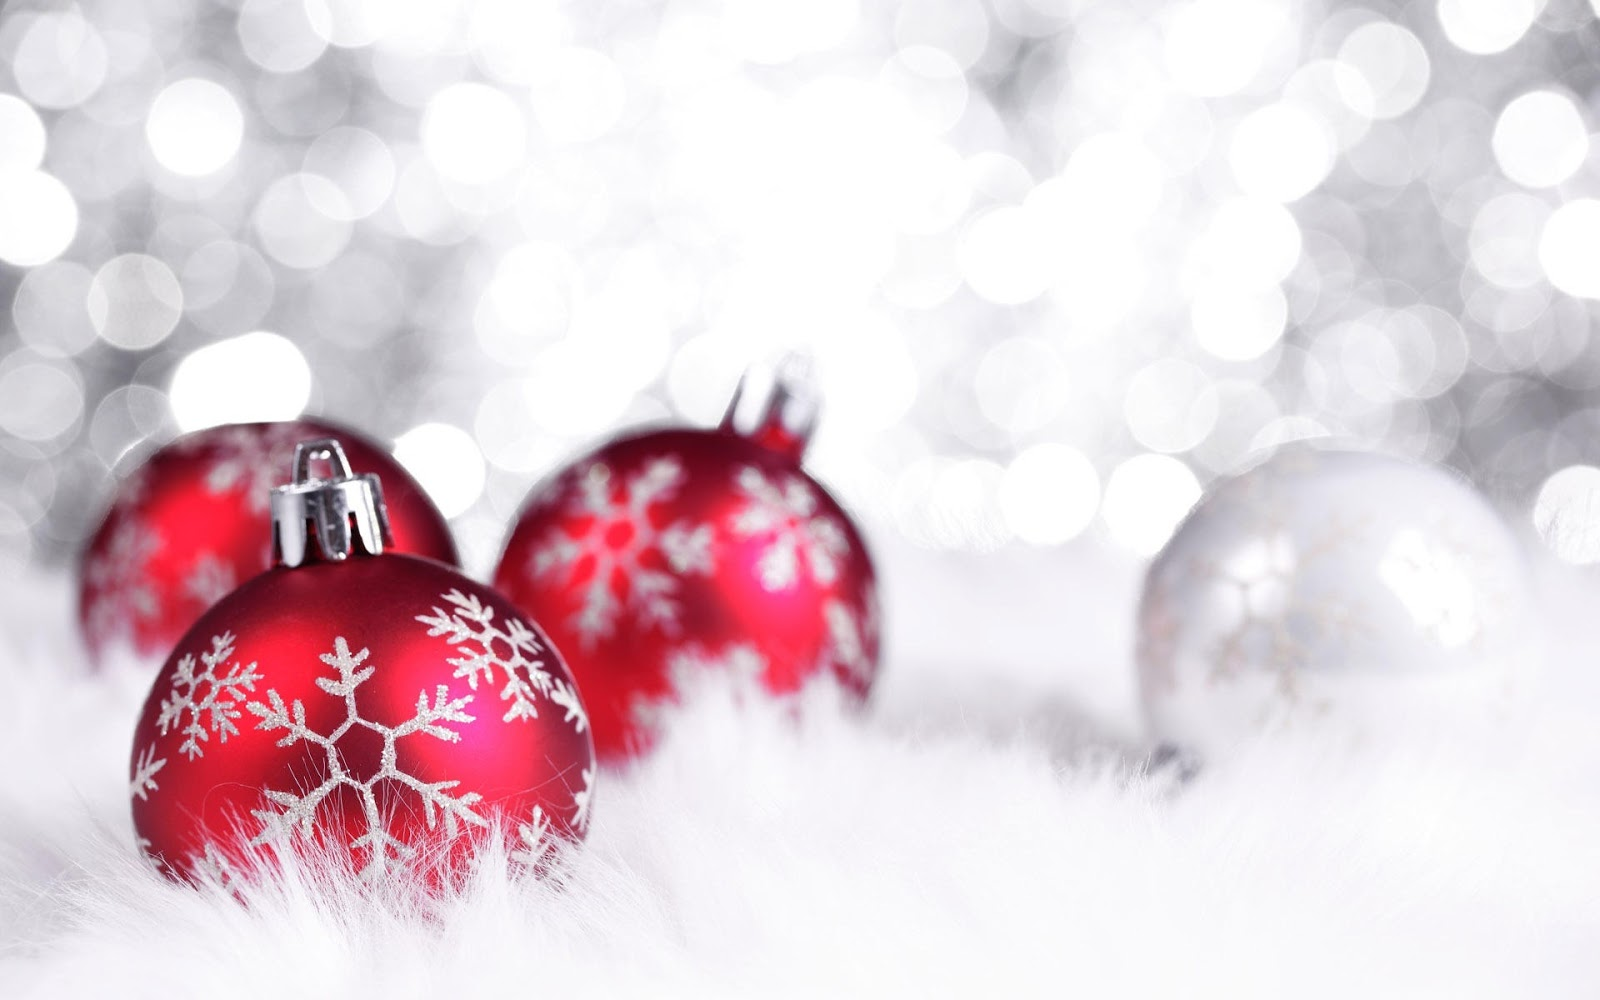 Background White Gallery: Christmas Background Images